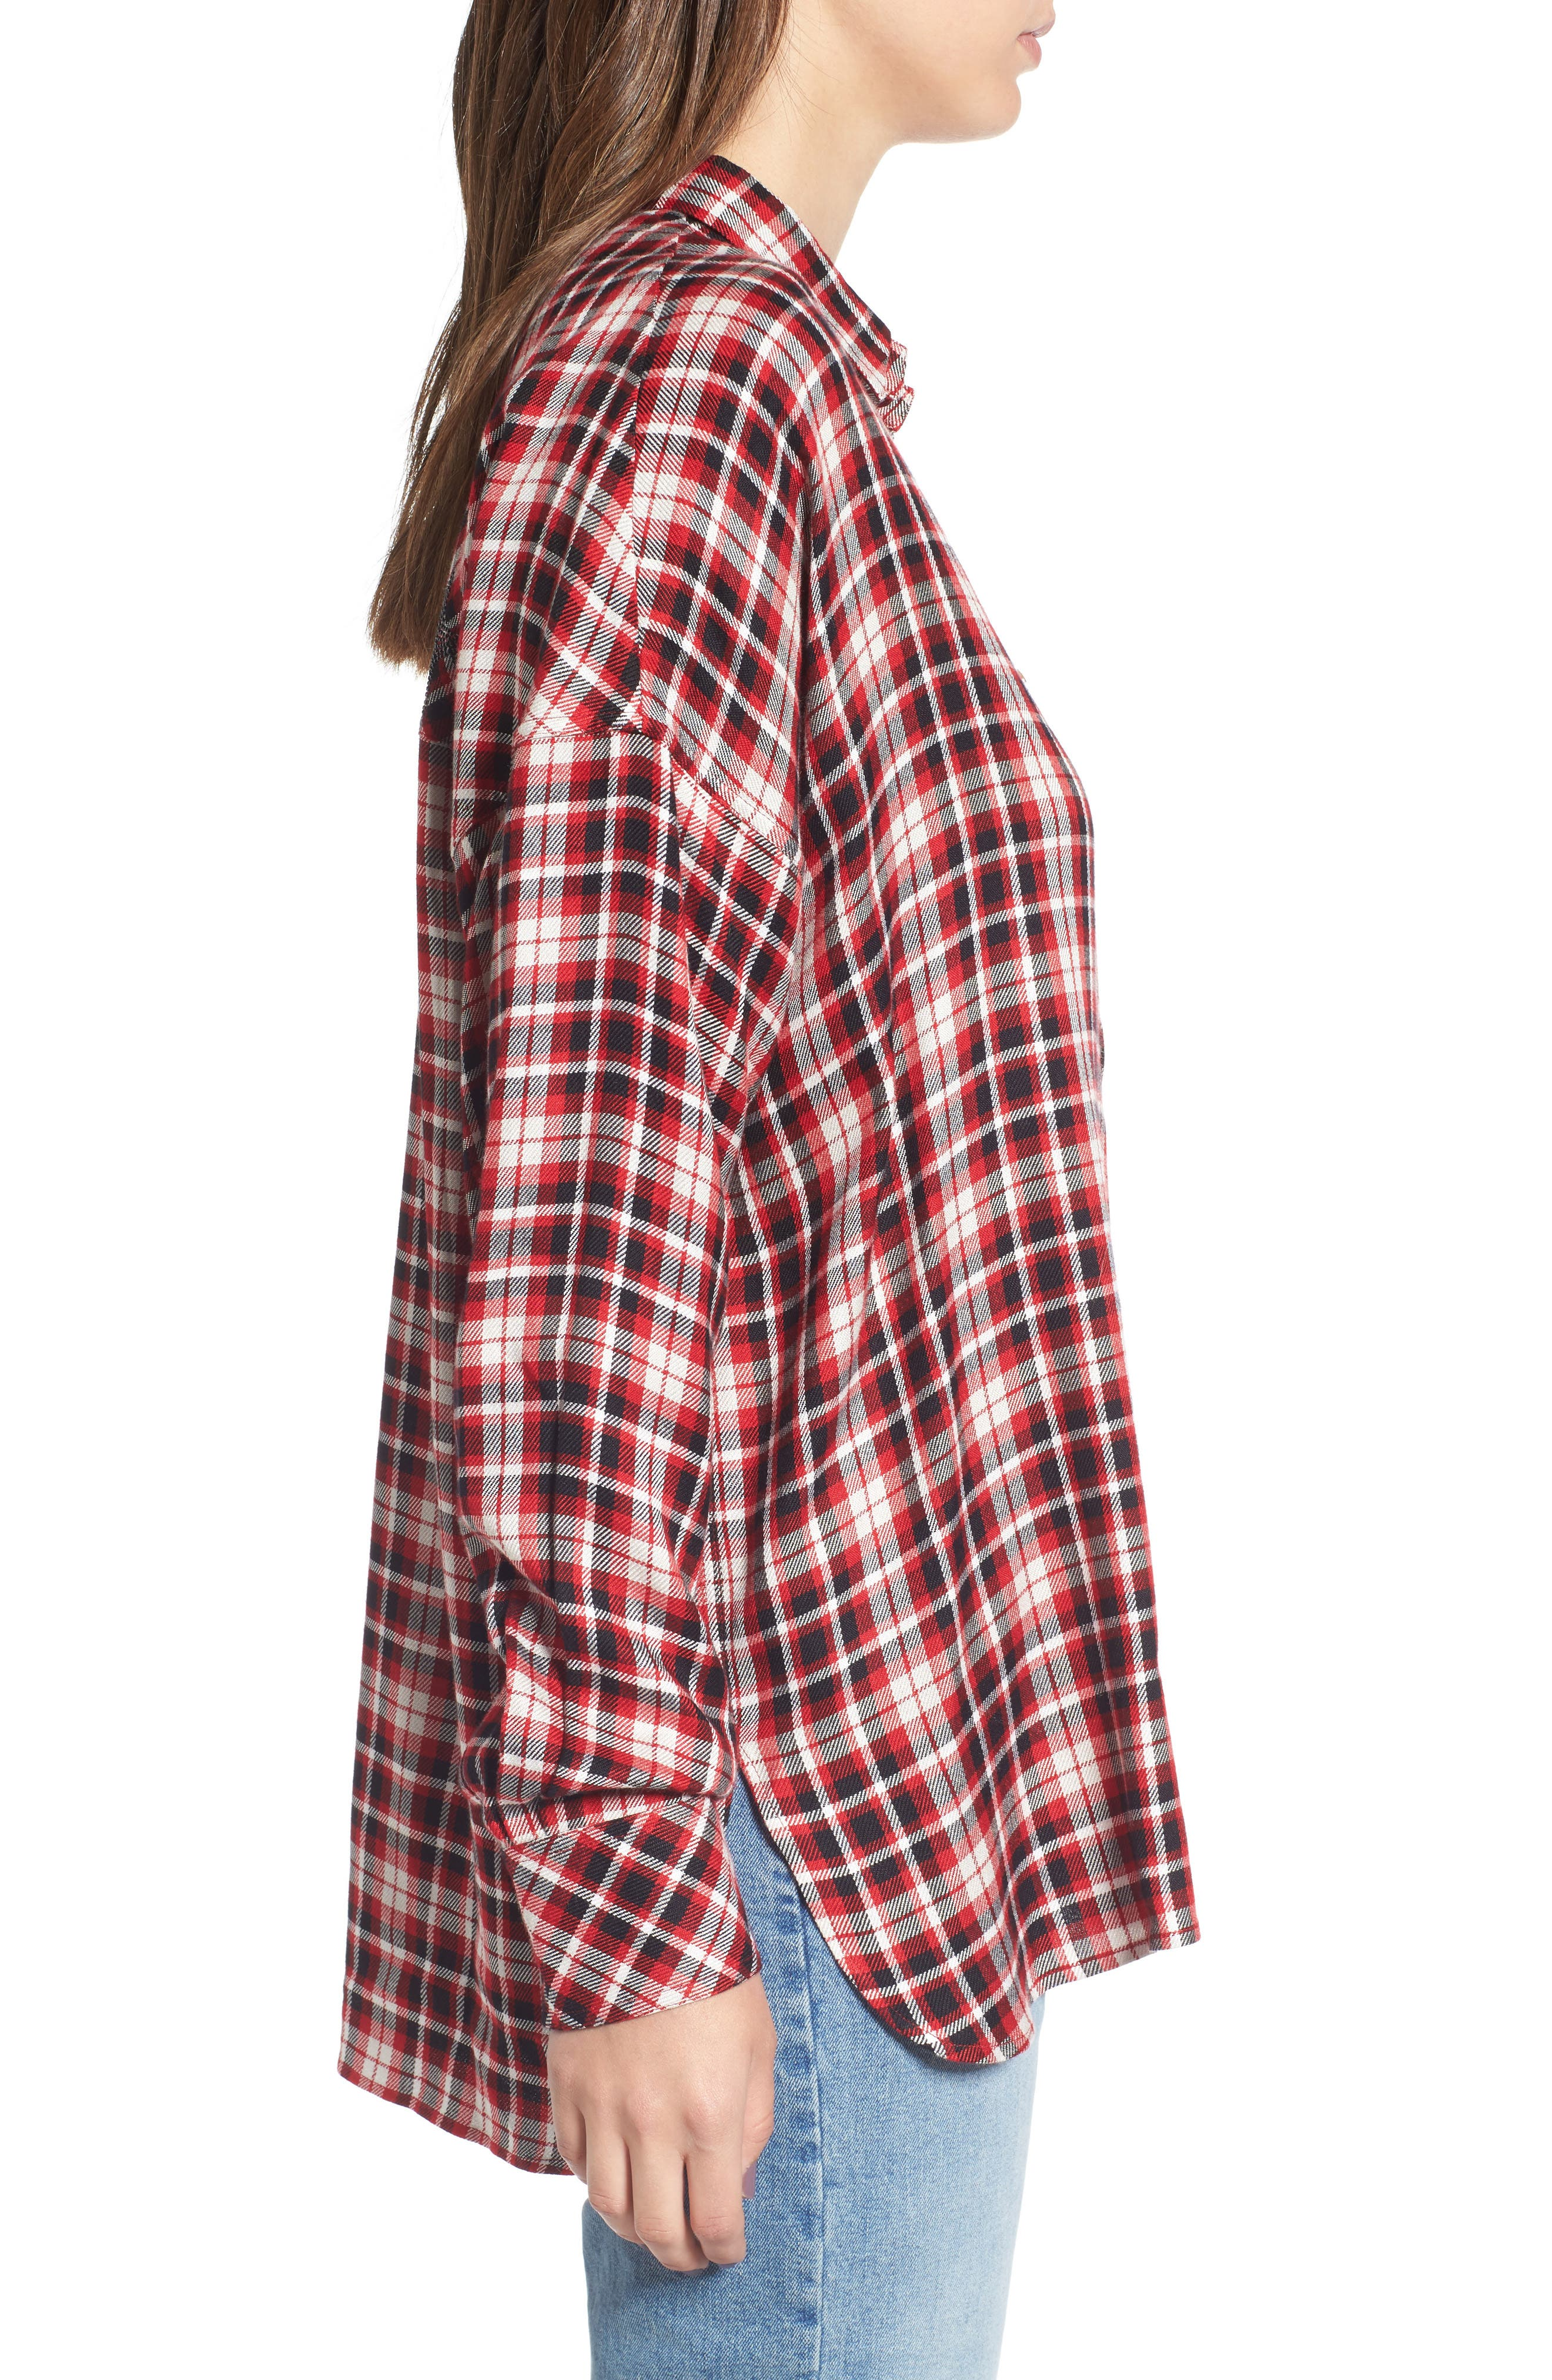 Tamara Car Plaid Shirt,                             Alternate thumbnail 3, color,